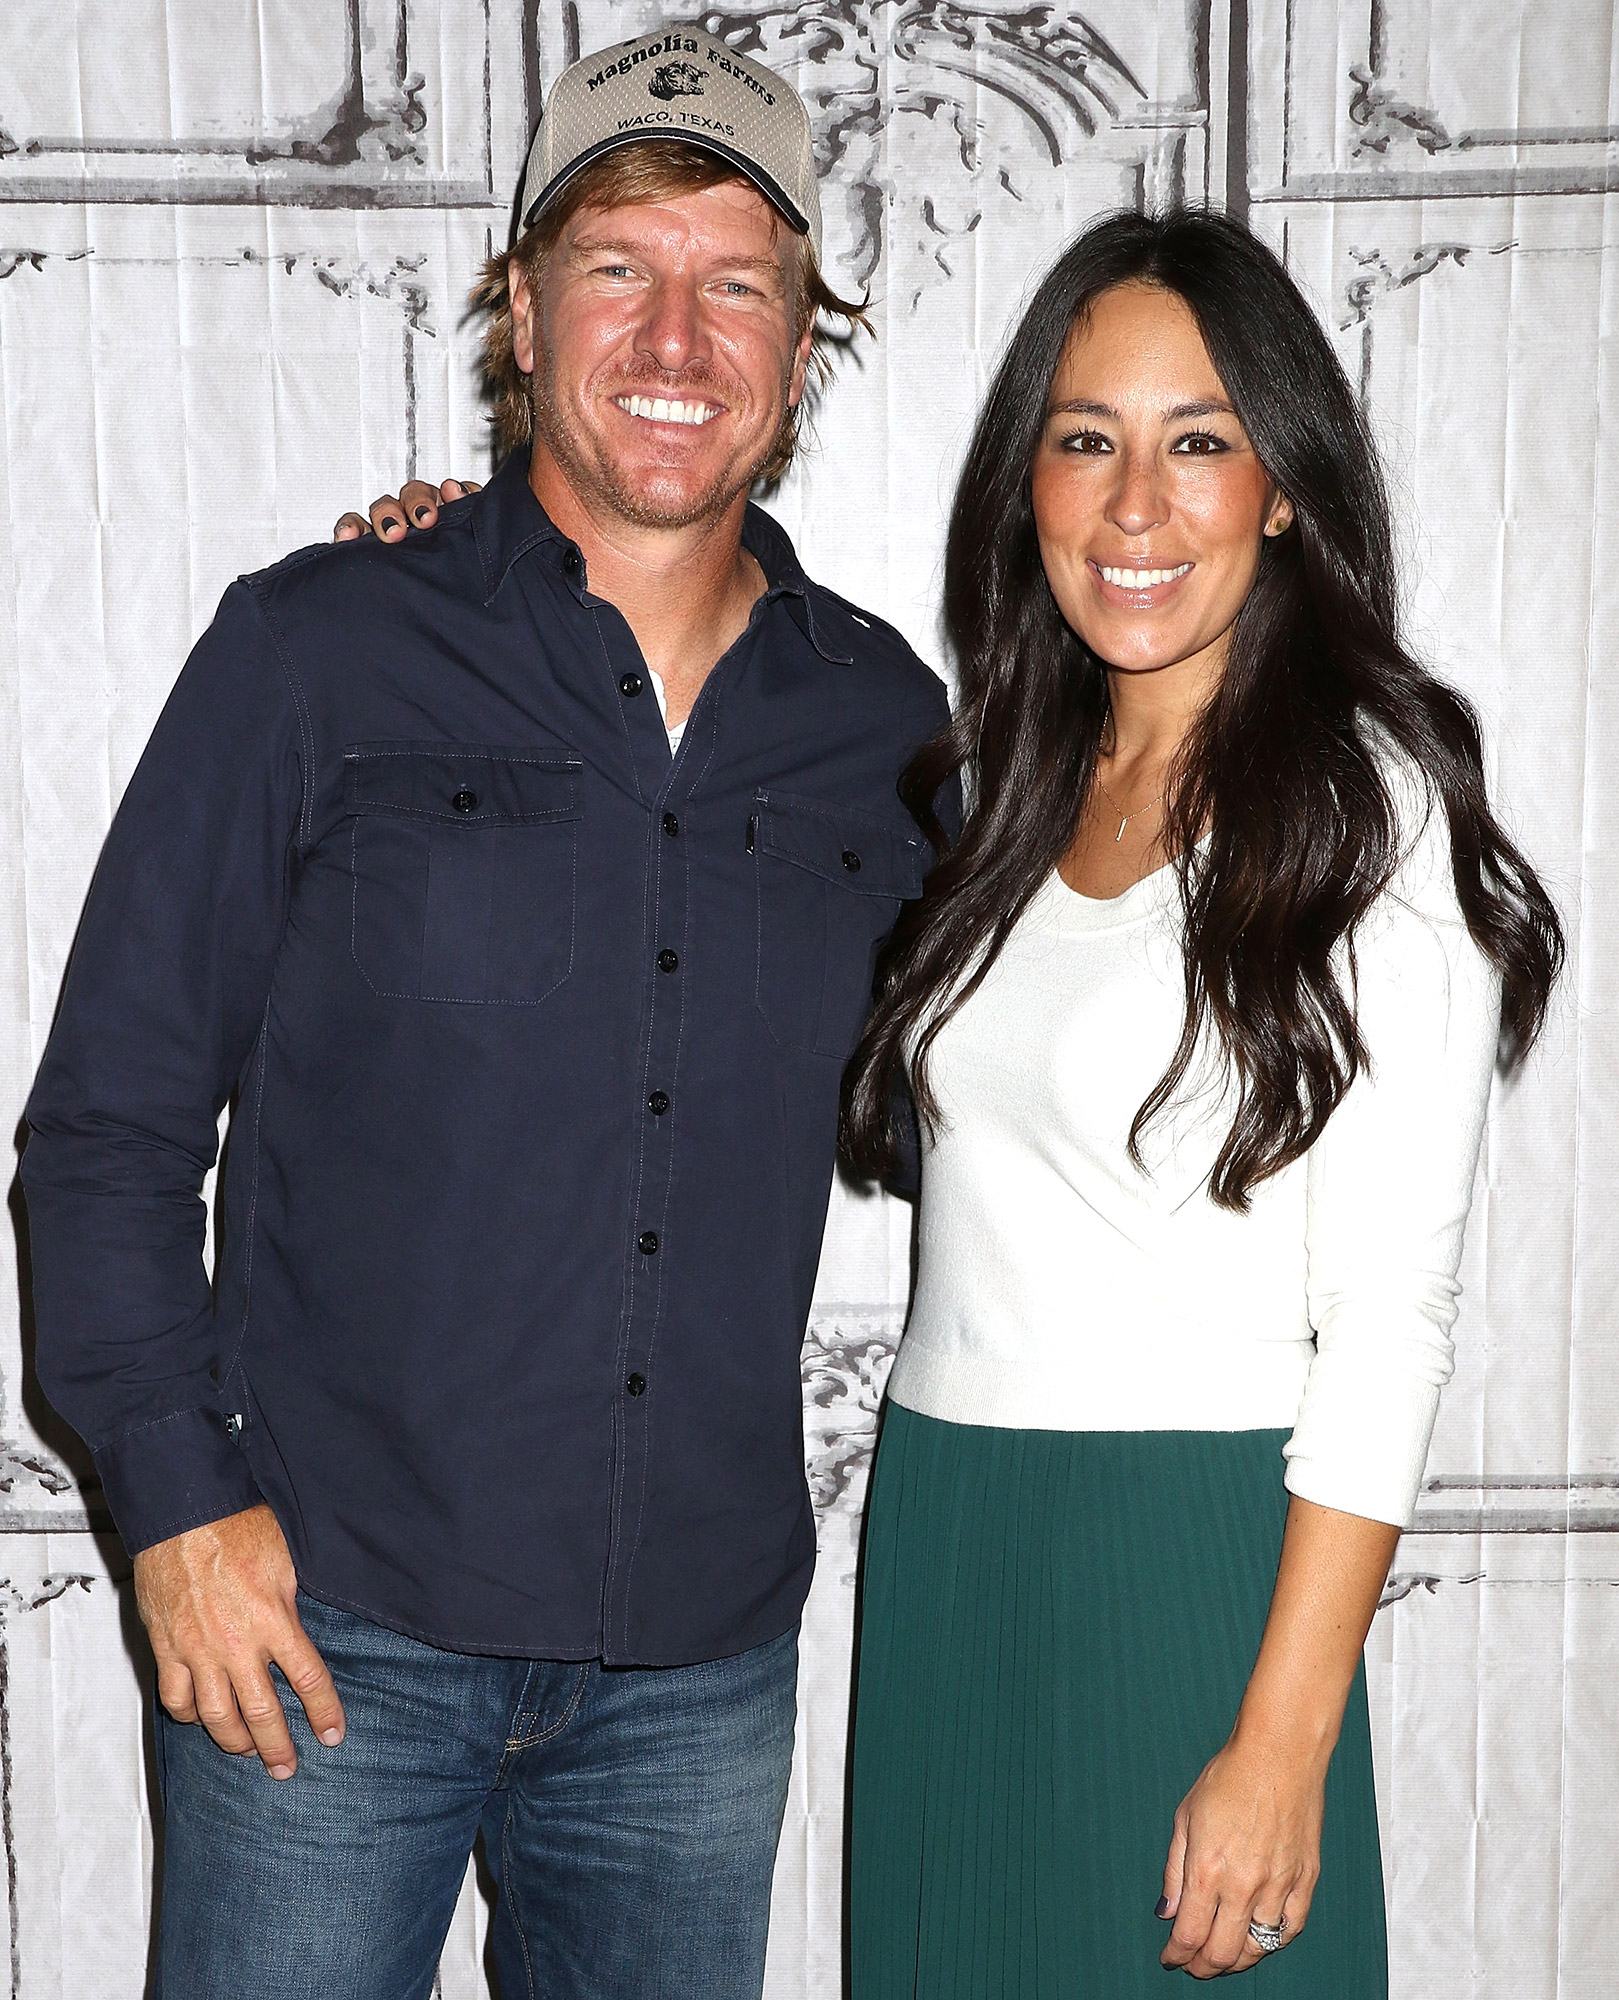 """NEW YORK, NY - OCTOBER 19: Chip Gaines and Joanna Gaines attend The Build Series to discuss """"The Magnolia Story"""" at AOL HQ on October 19, 2016 in New York City. (Photo by Laura Cavanaugh/WireImage)"""